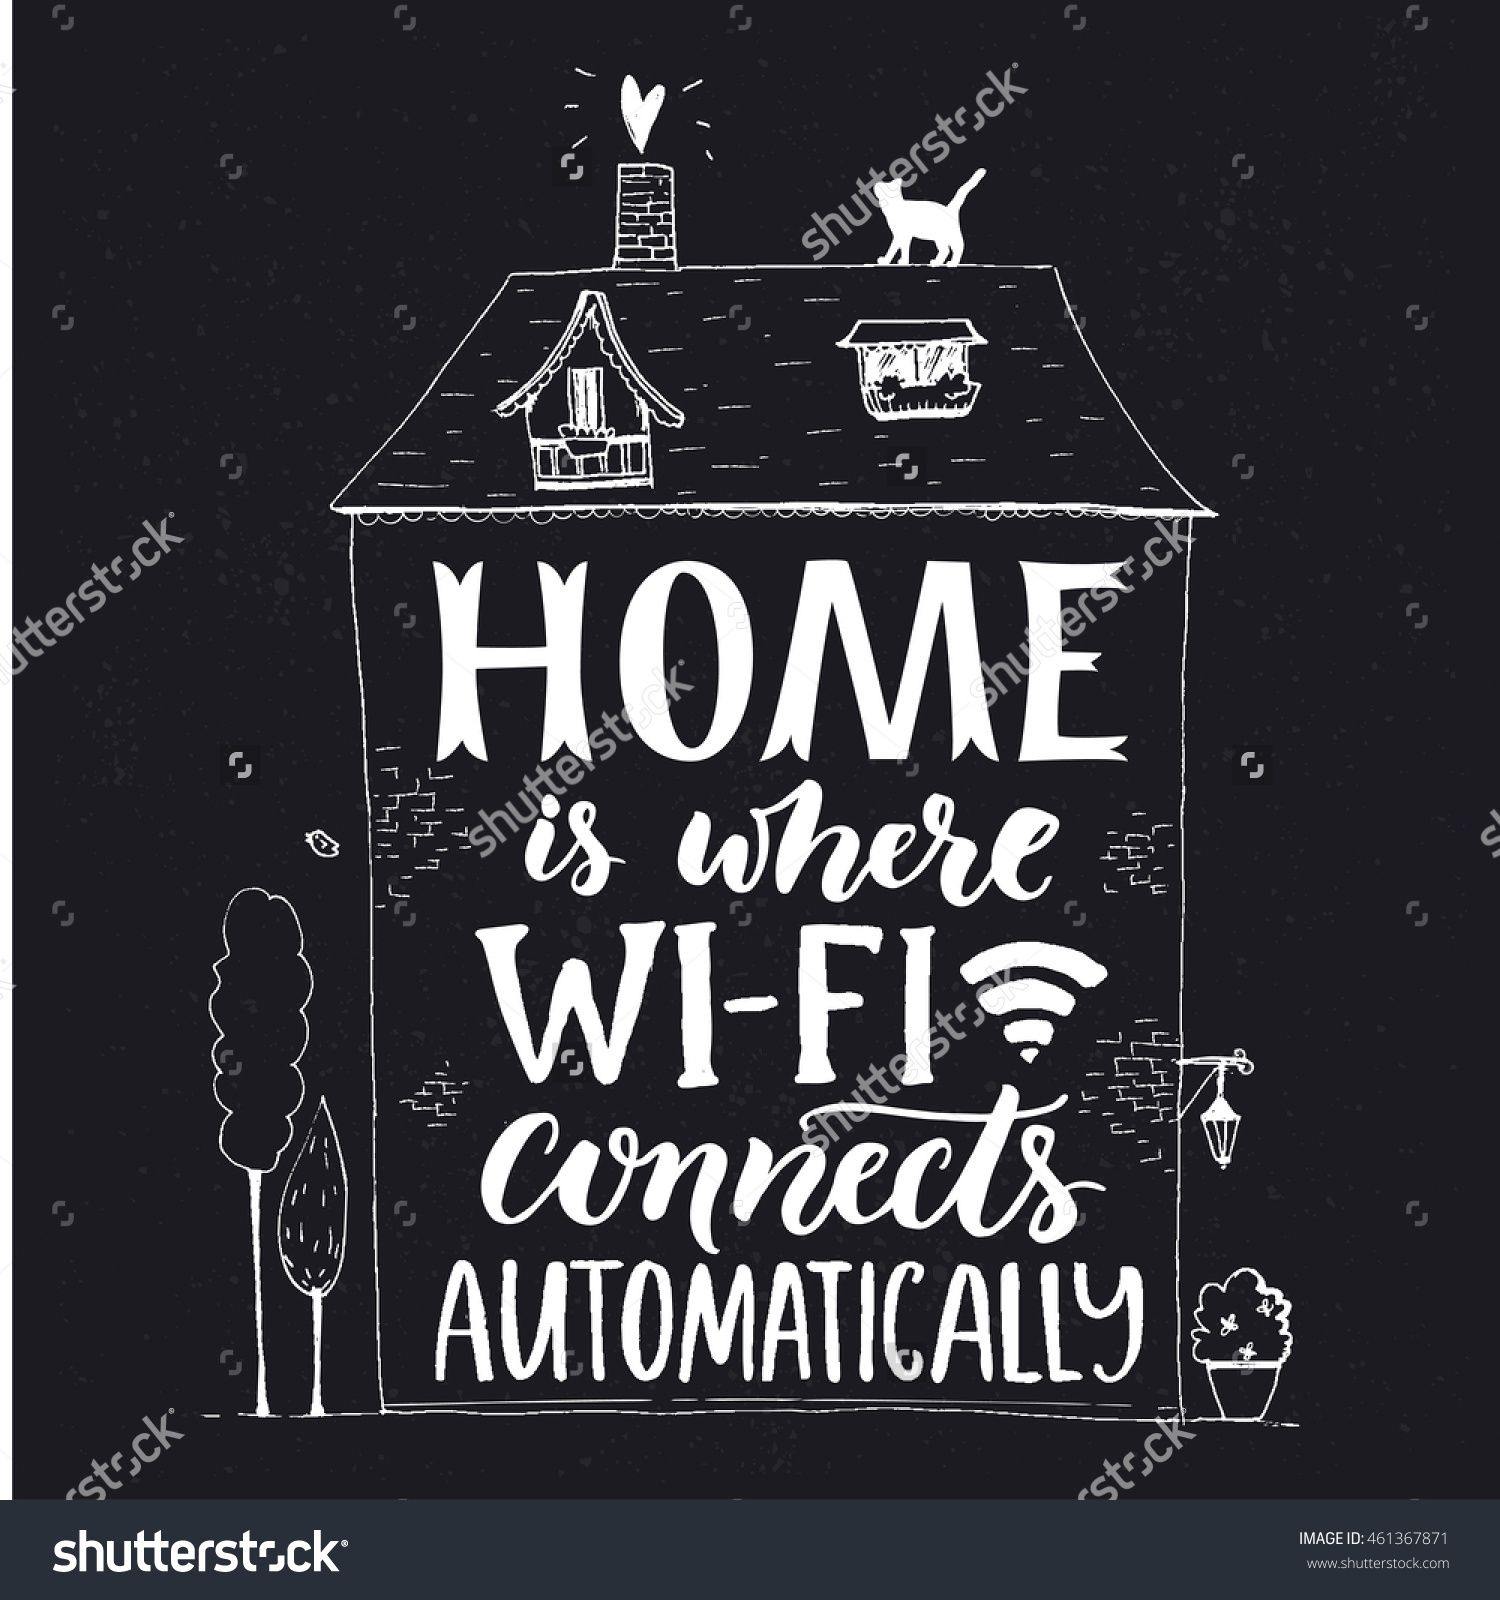 how to connect wifi not automatically